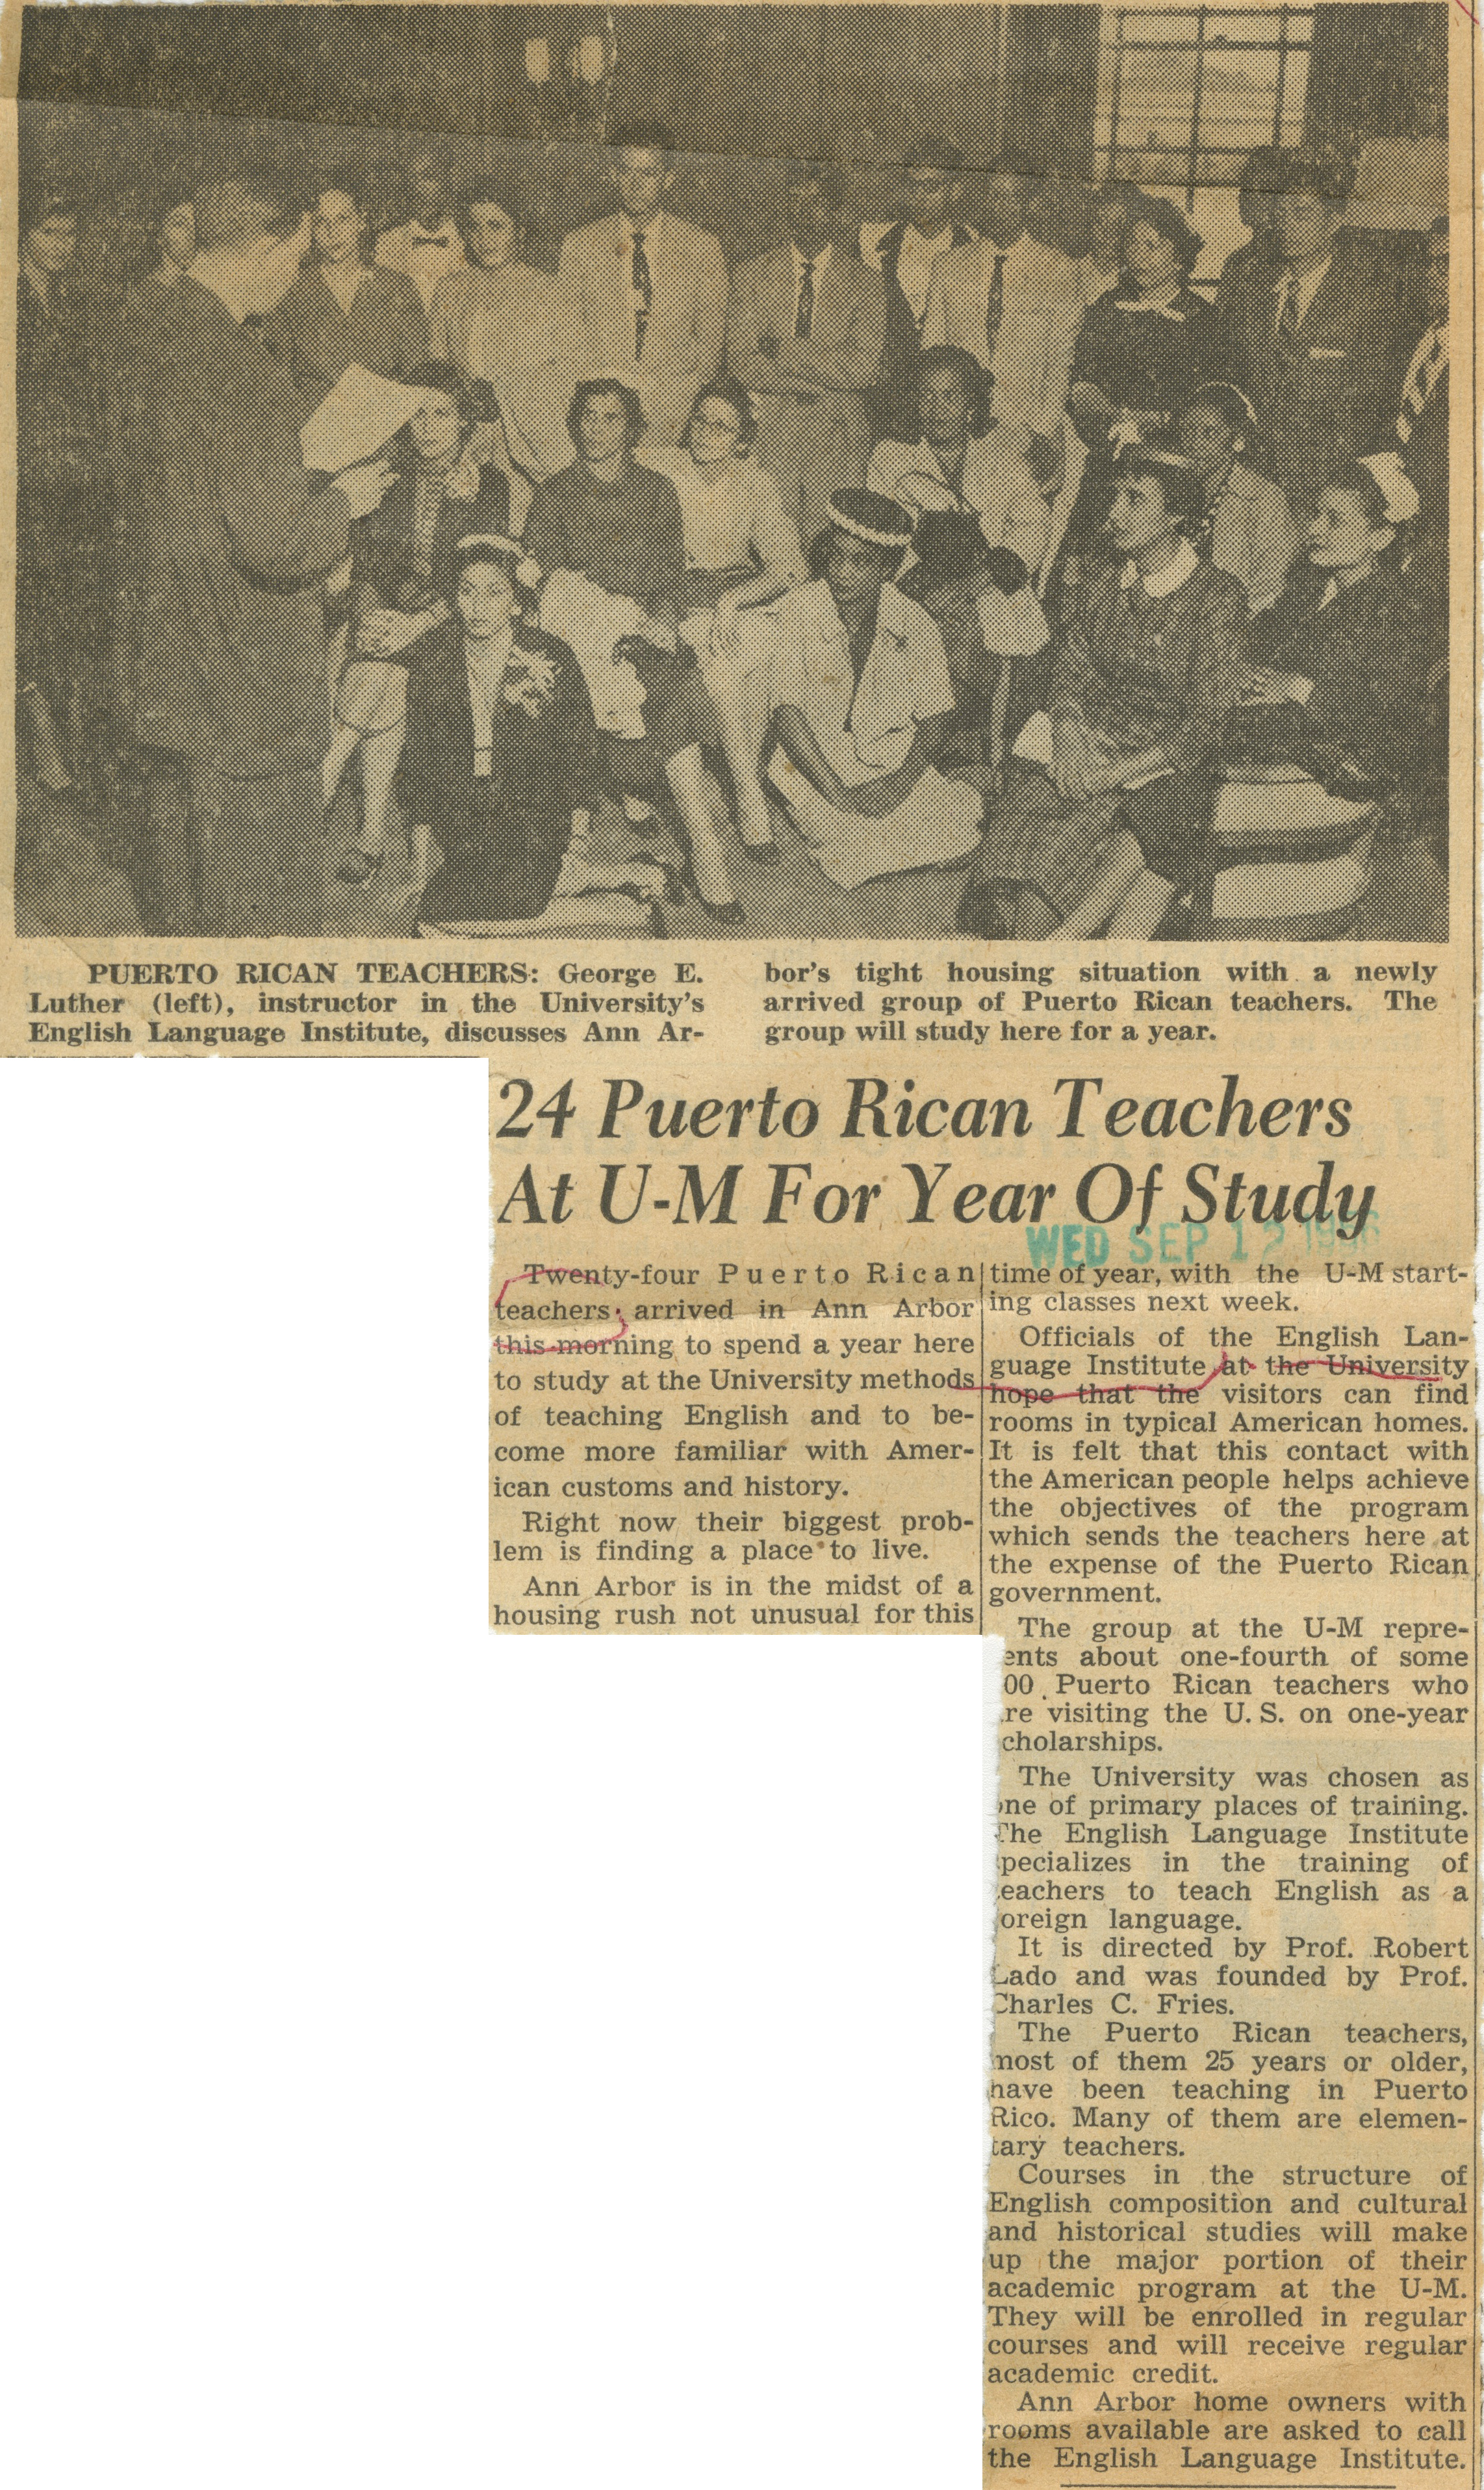 24 Puerto Rican Teachers At U-M For Year Of Study image